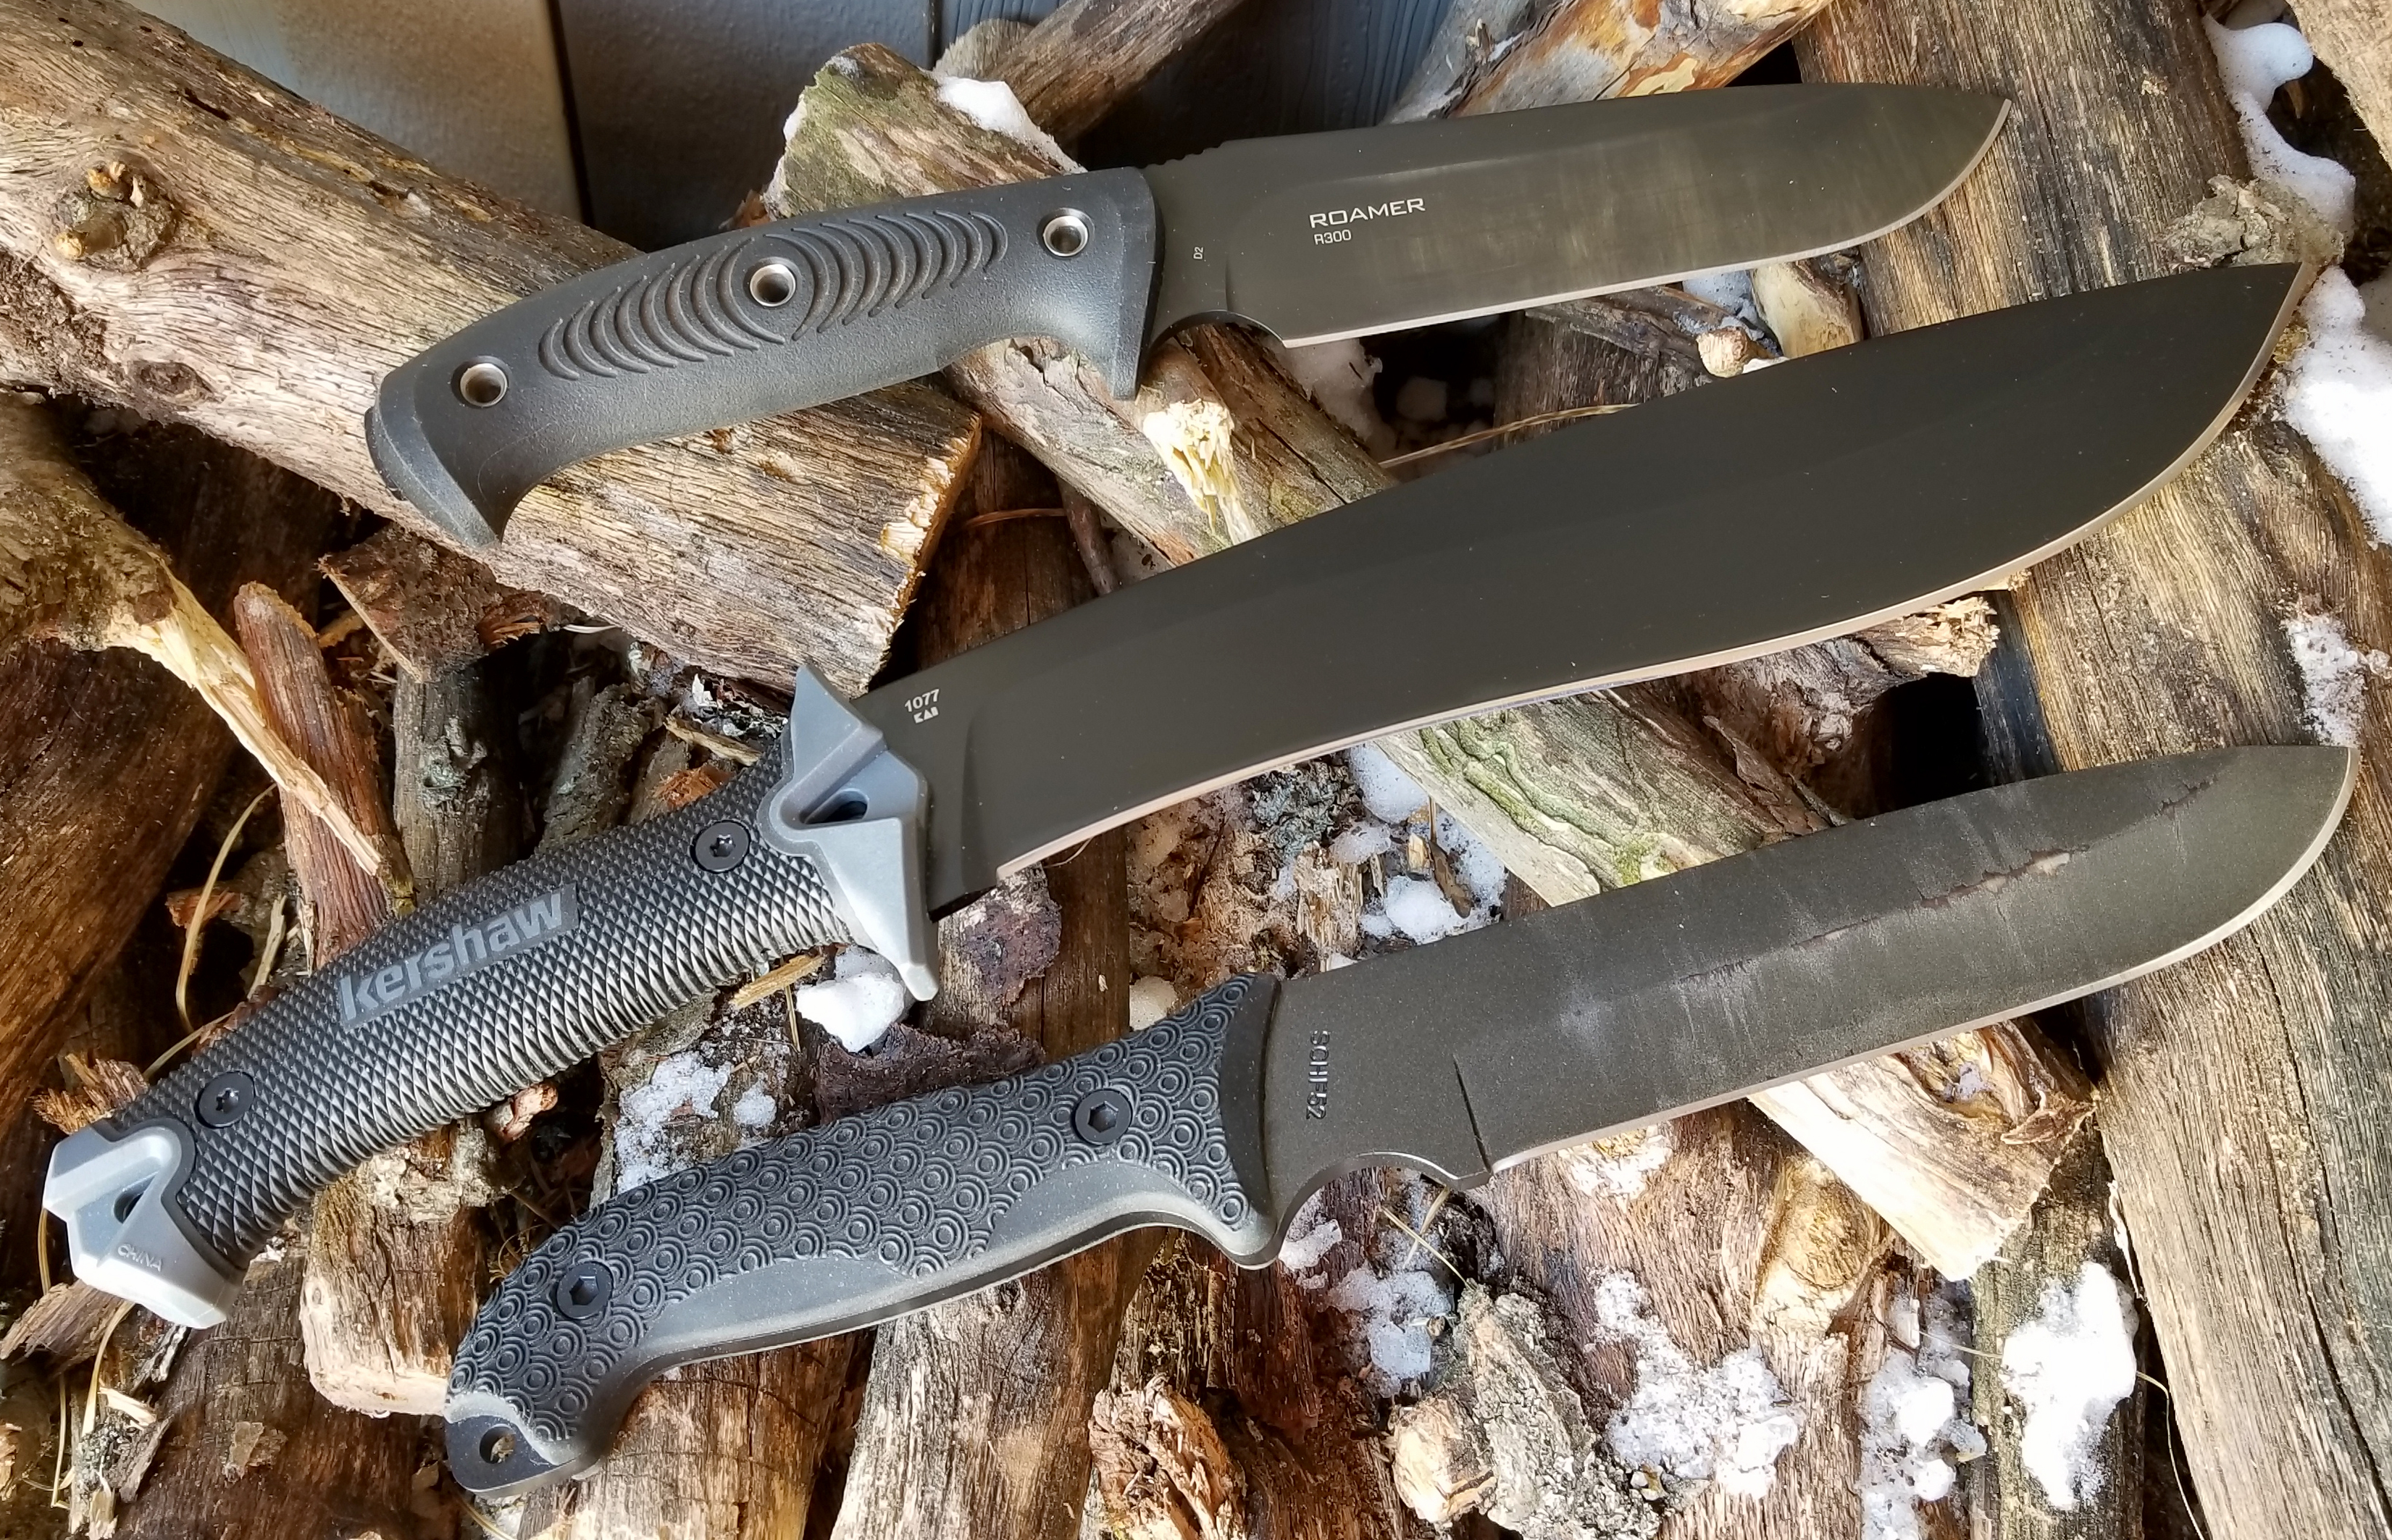 Big Knives on a Budget: 3 'Choppers' Tested | GearJunkie